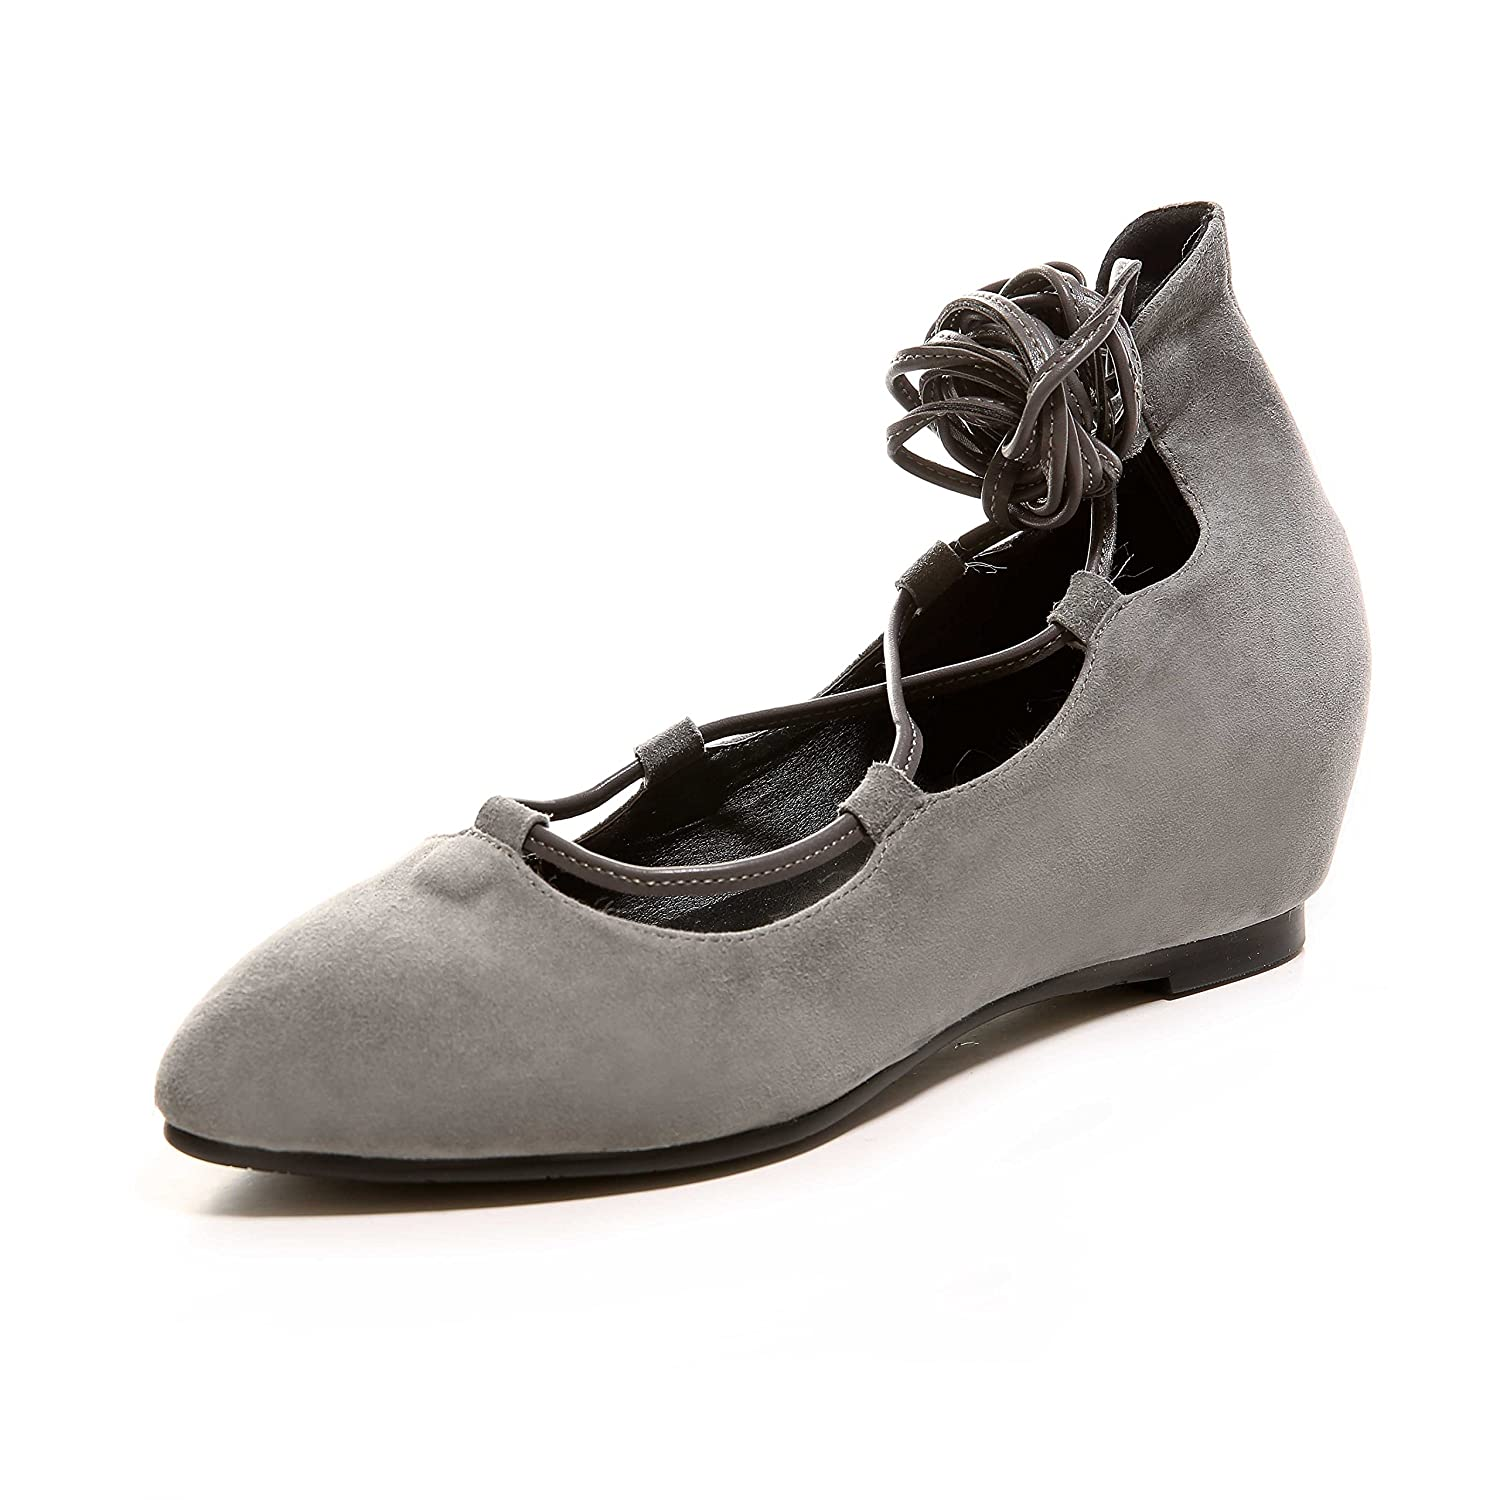 Chaussures Adeesu noires femme NFzFby